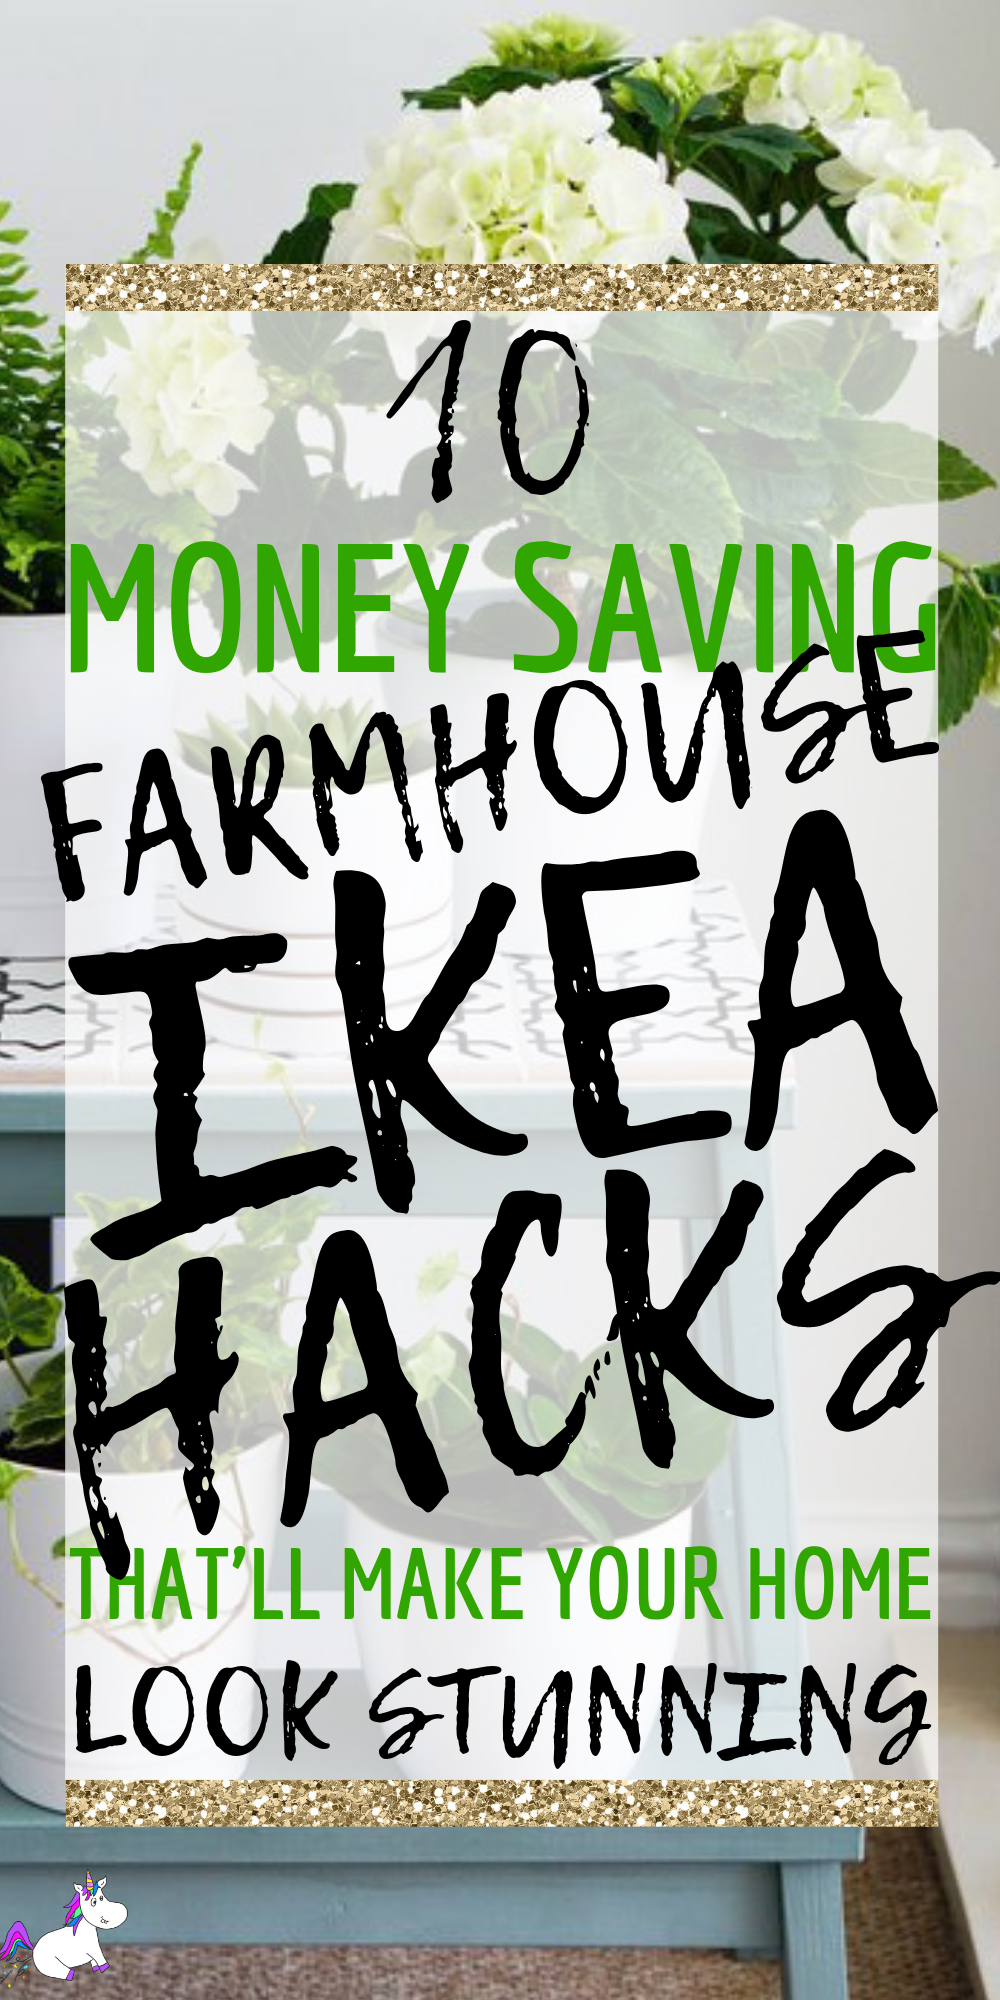 10 Gorgeous Farmhouse Ikea Hacks That Will Save You Money! Farmhouse home decor | home decor on a budget | diy projects for the home | Via: https://themummyfront.co #themummyfront #ikeahacks #farmhousehomedecor #creativehomedecor #homedecoronabudget